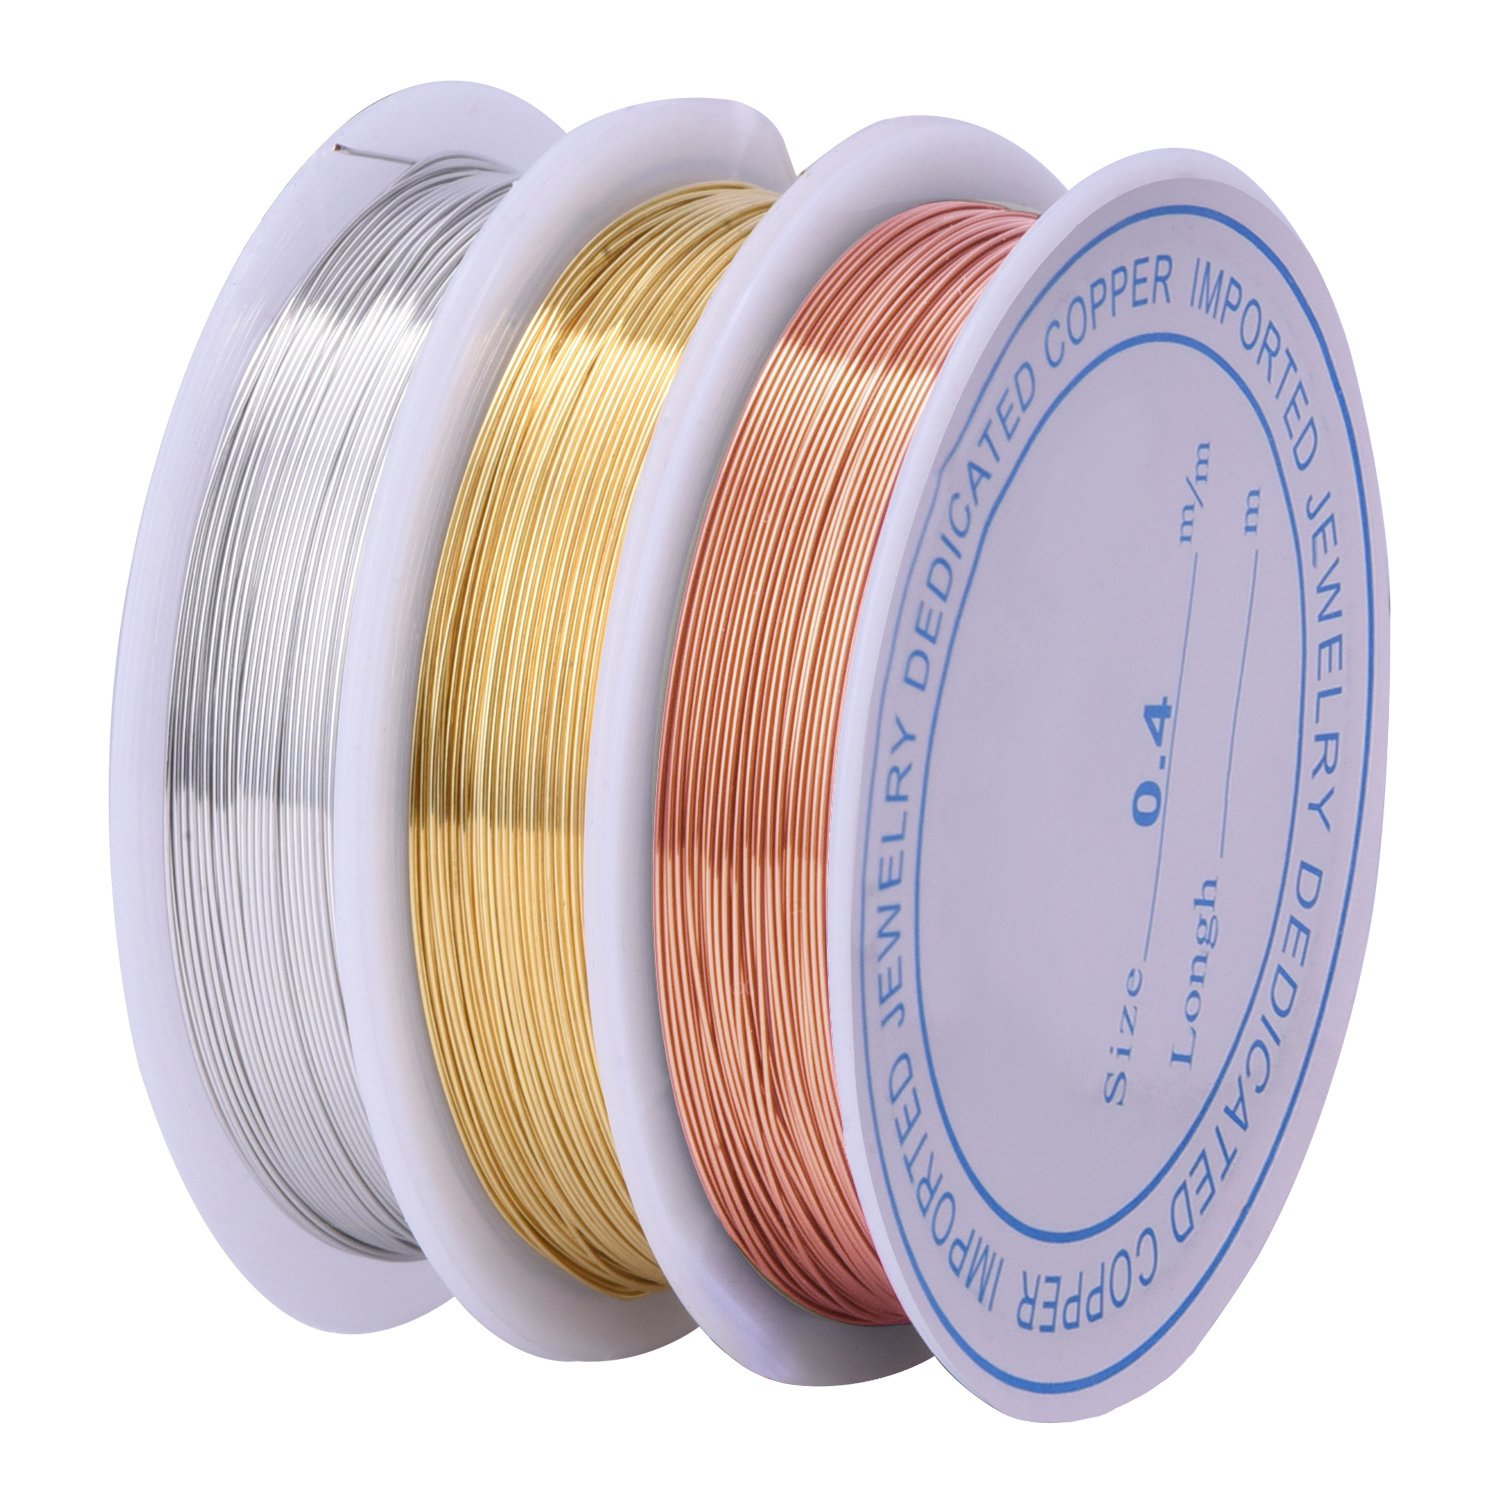 3 Pieces 0.4 mm Tarnish Resistant Bare Copper Wire Jewelry Beading Wire Roll for Crafts Beading Jewelry Making eBoot